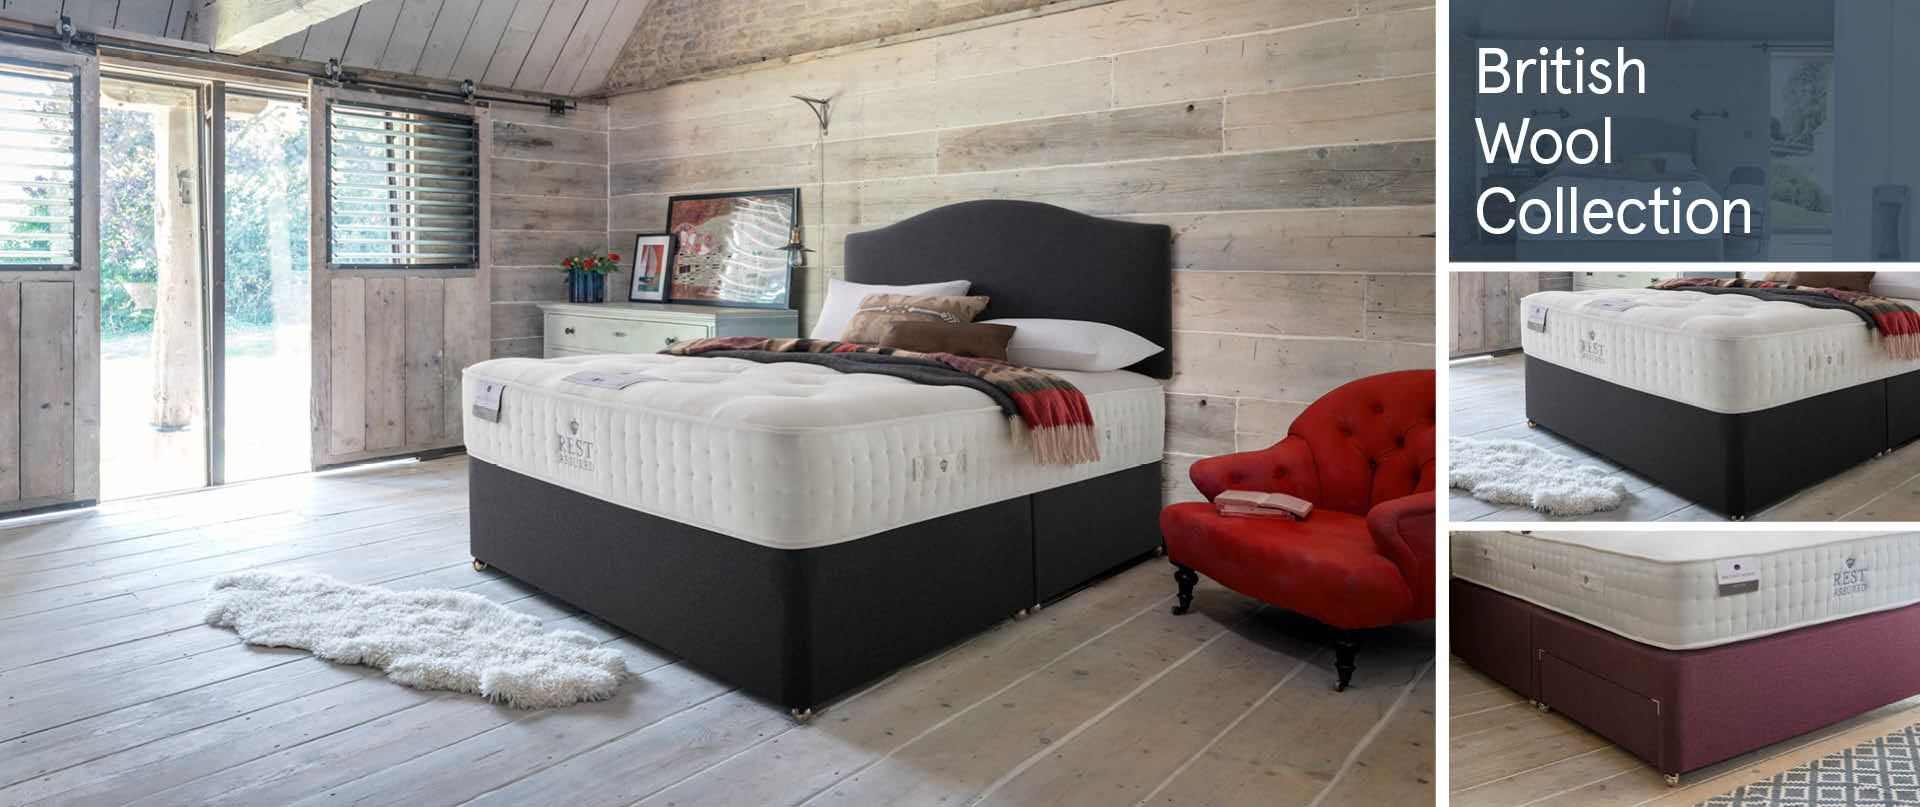 Ottoman/British-Wool-Collection Ottoman Beds Ranges